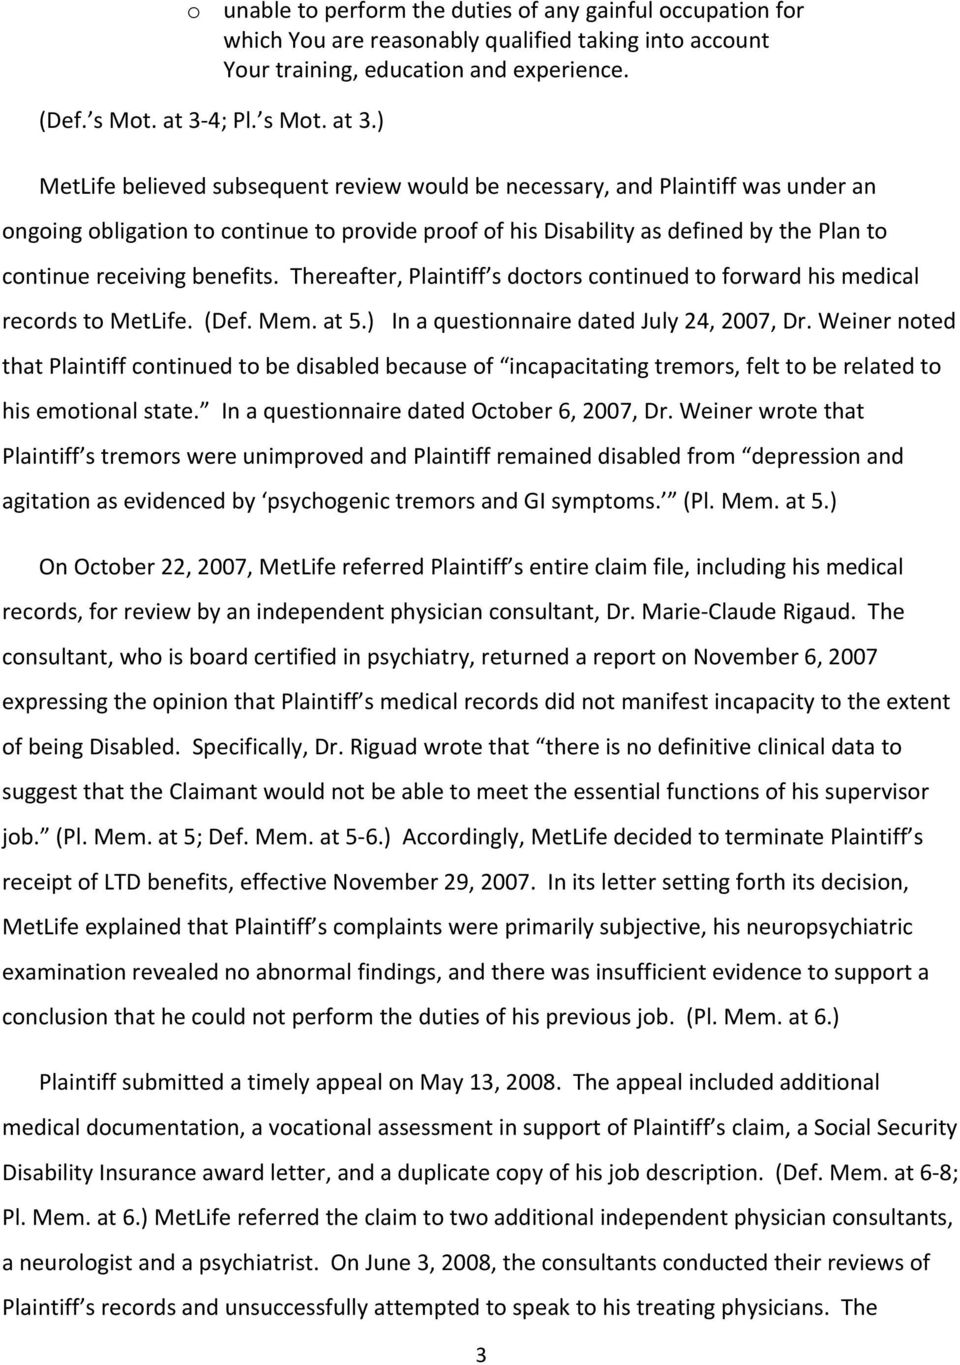 ) MetLife believed subsequent review would be necessary, and Plaintiff was under an ongoing obligation to continue to provide proof of his Disability as defined by the Plan to continue receiving